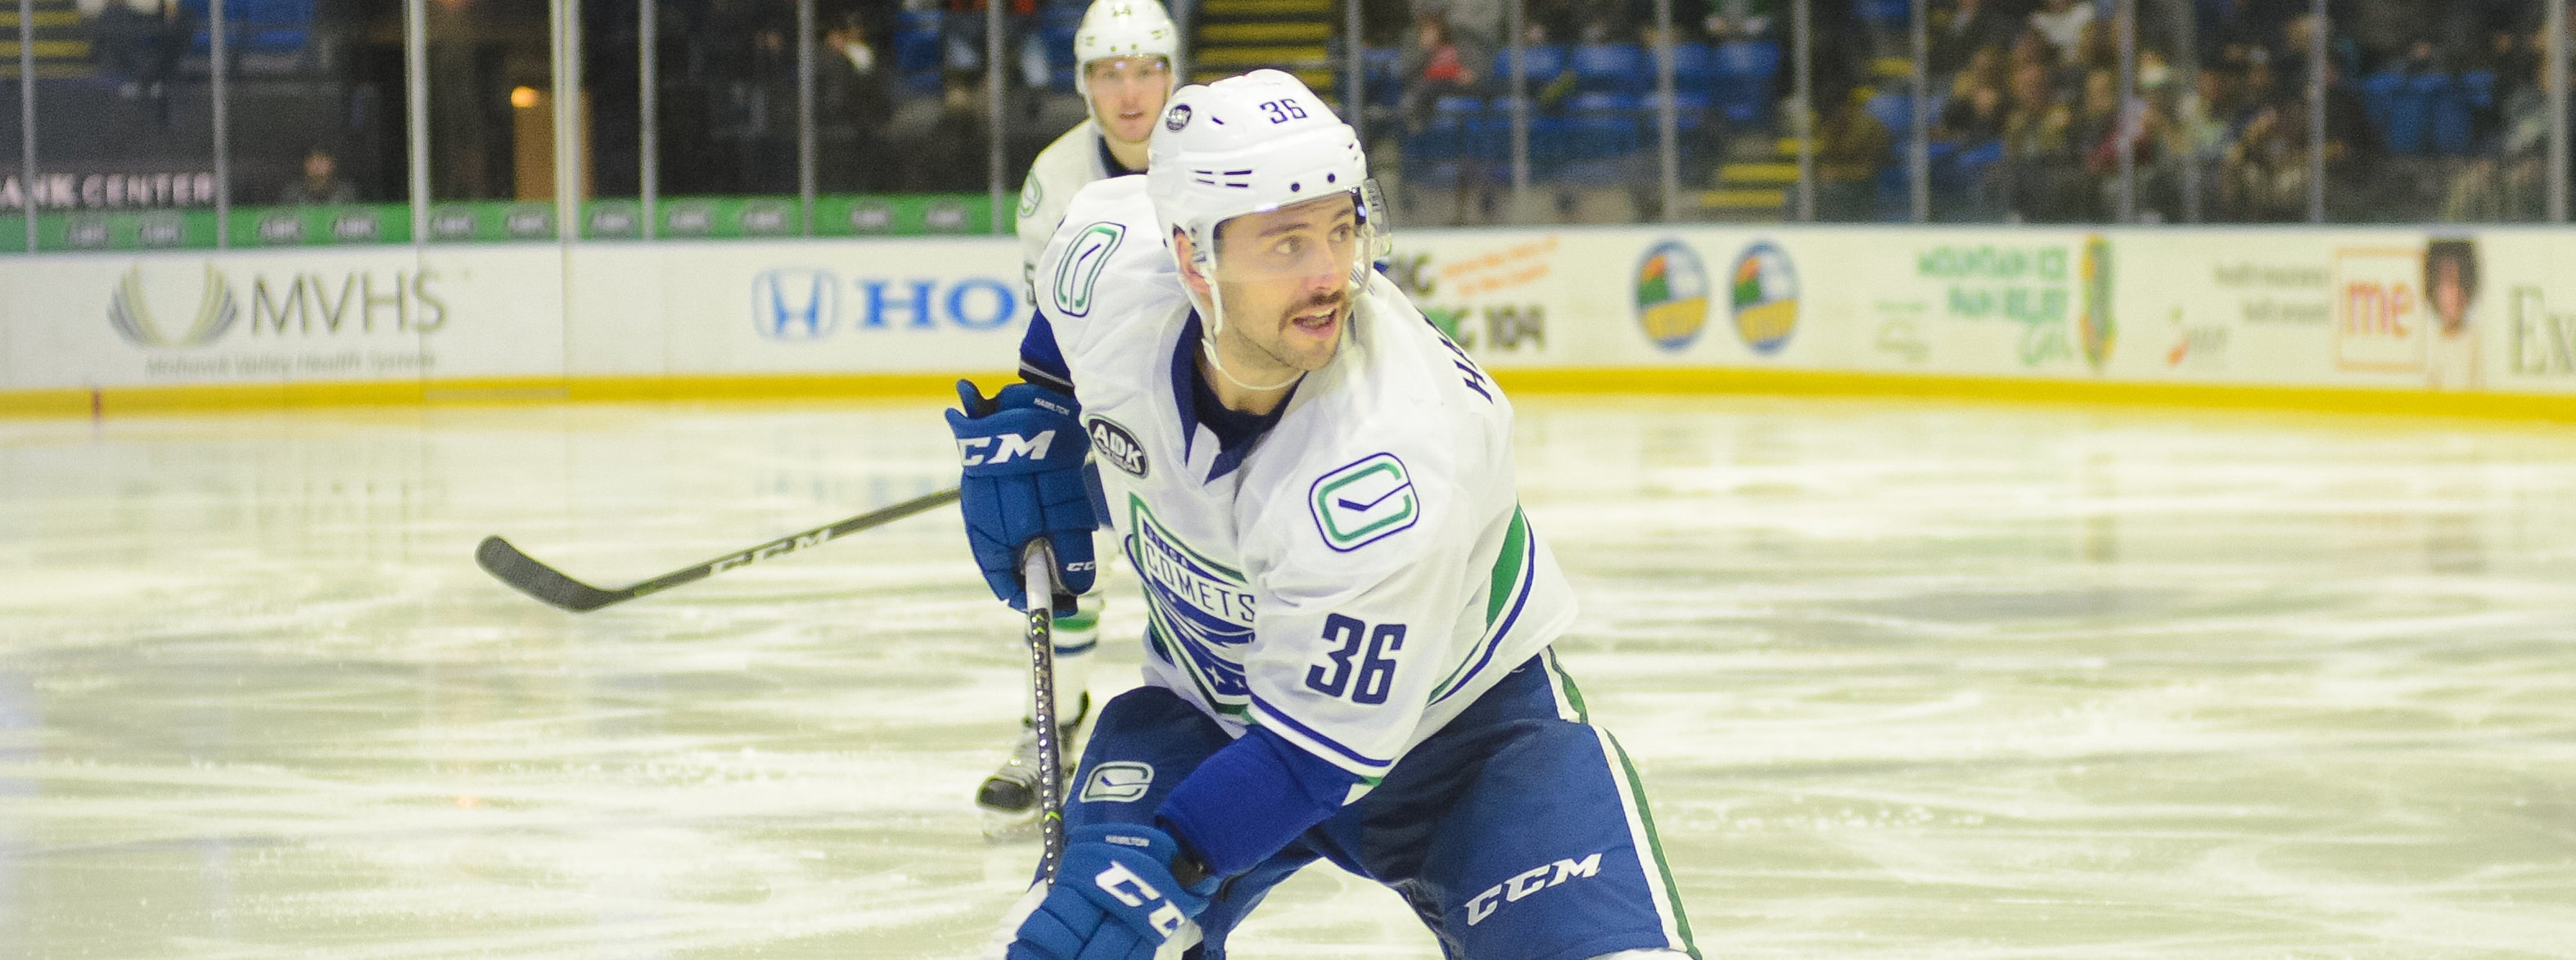 COMETS HEAD NORTH TO SQUARE OFF AGAINST ROCKET